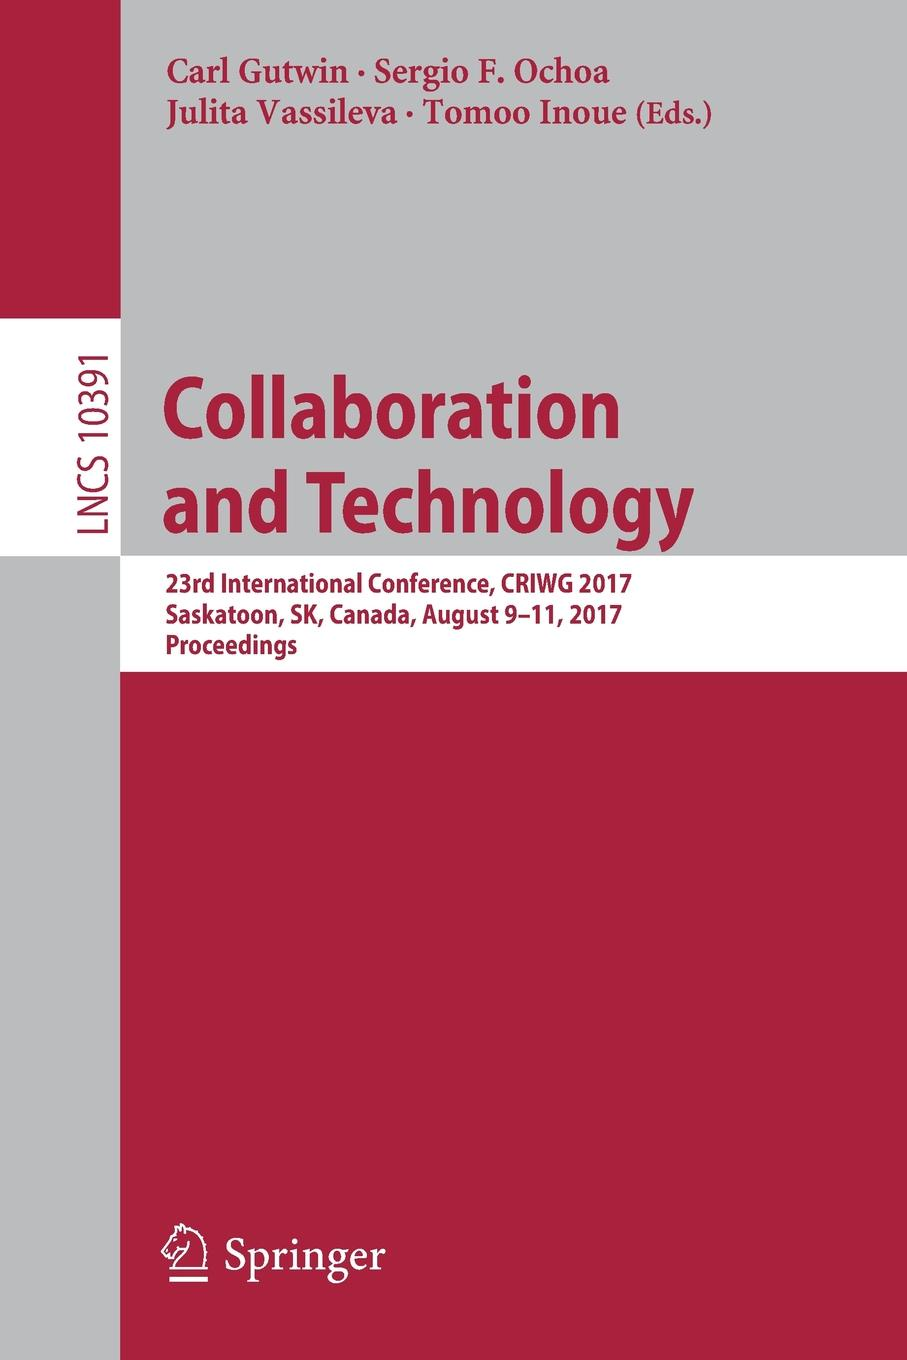 Collaboration and Technology. 23rd International Conference, CRIWG 2017, Saskatoon, SK, Canada, August 9-11, 2017, Proceedings